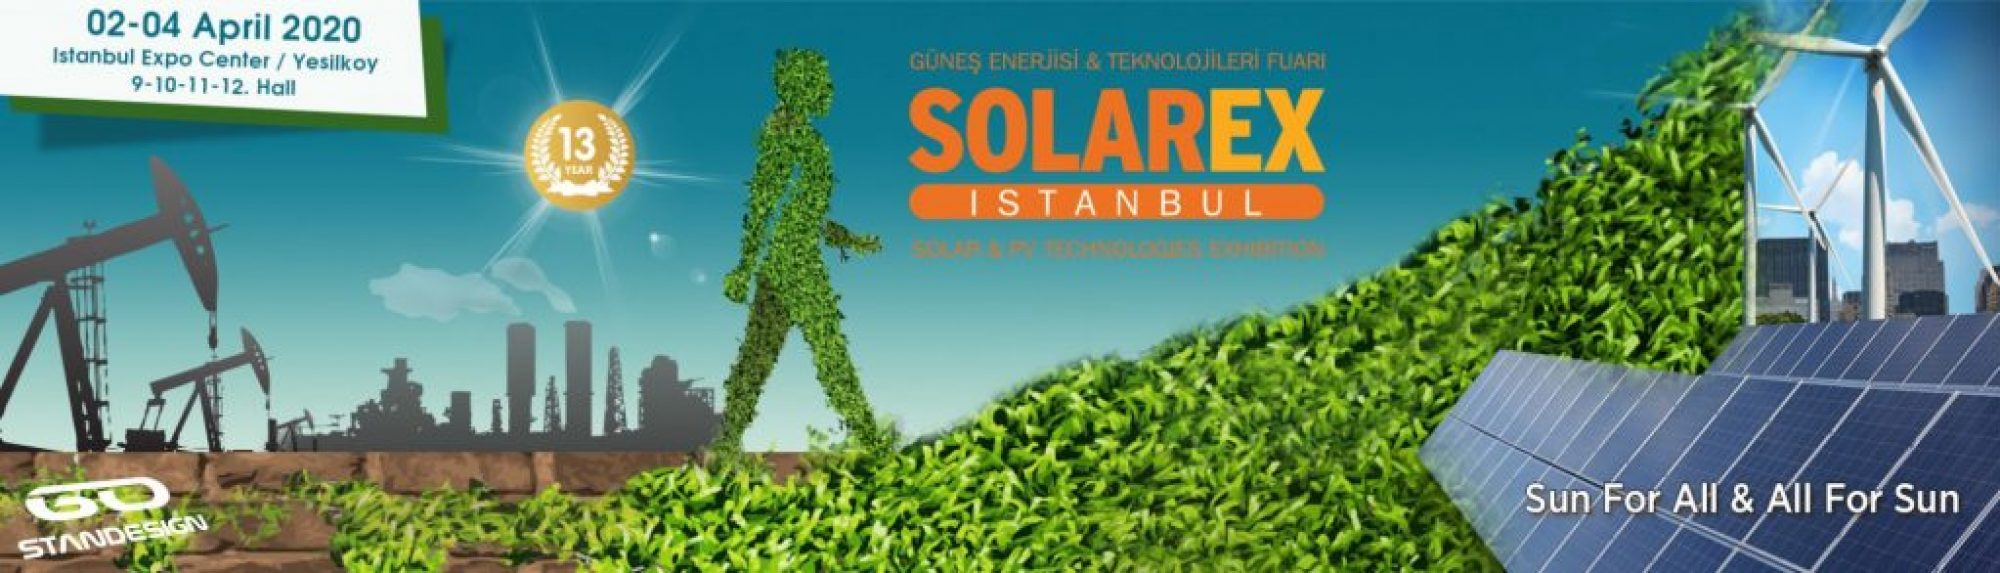 SOLAREX Istanbul 2020 International Solar Energy and Technologies Exhibition